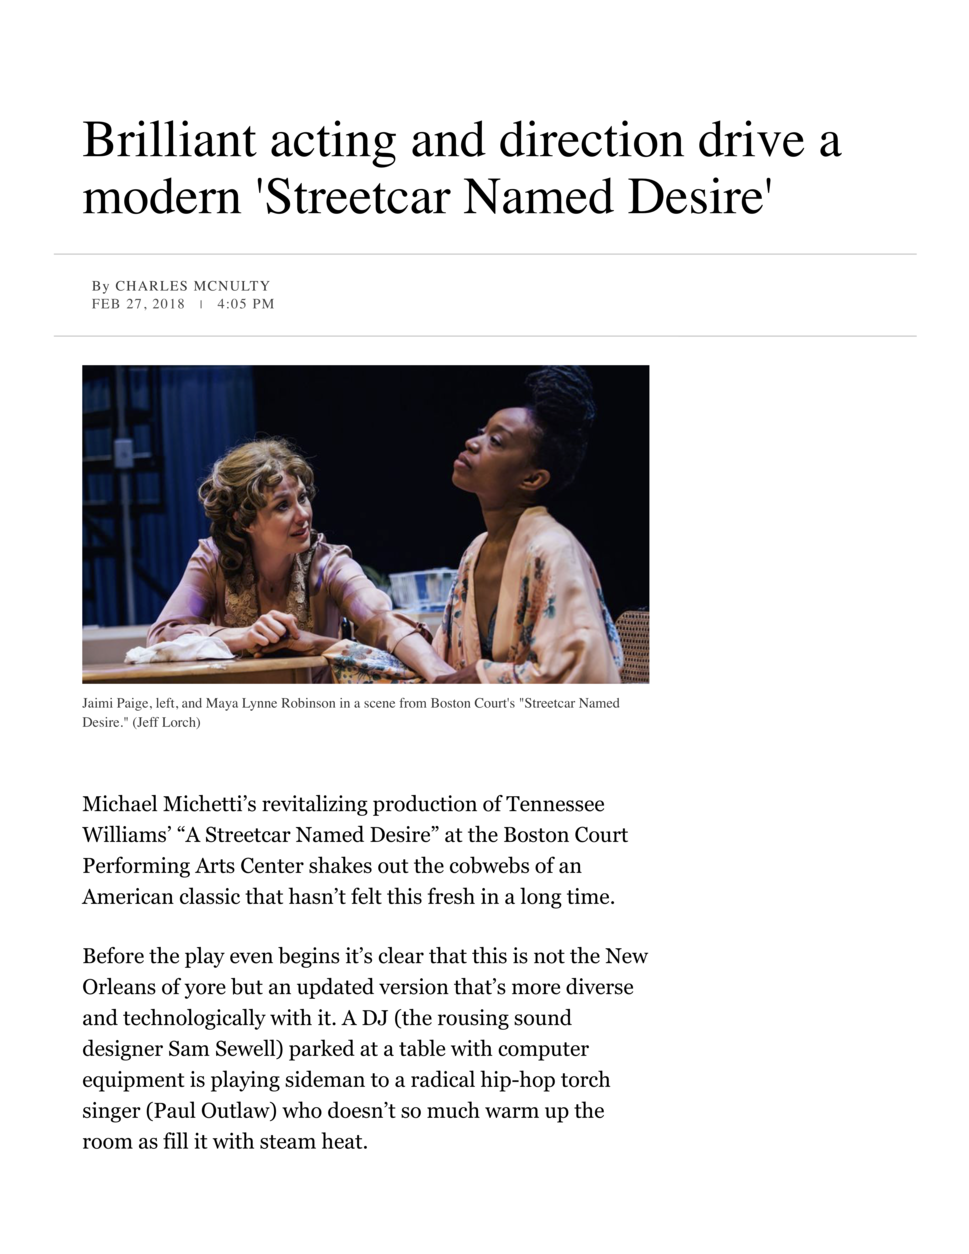 Review of Michael Michetti's production of  A Streetcar Named Desire , named one of the year's best